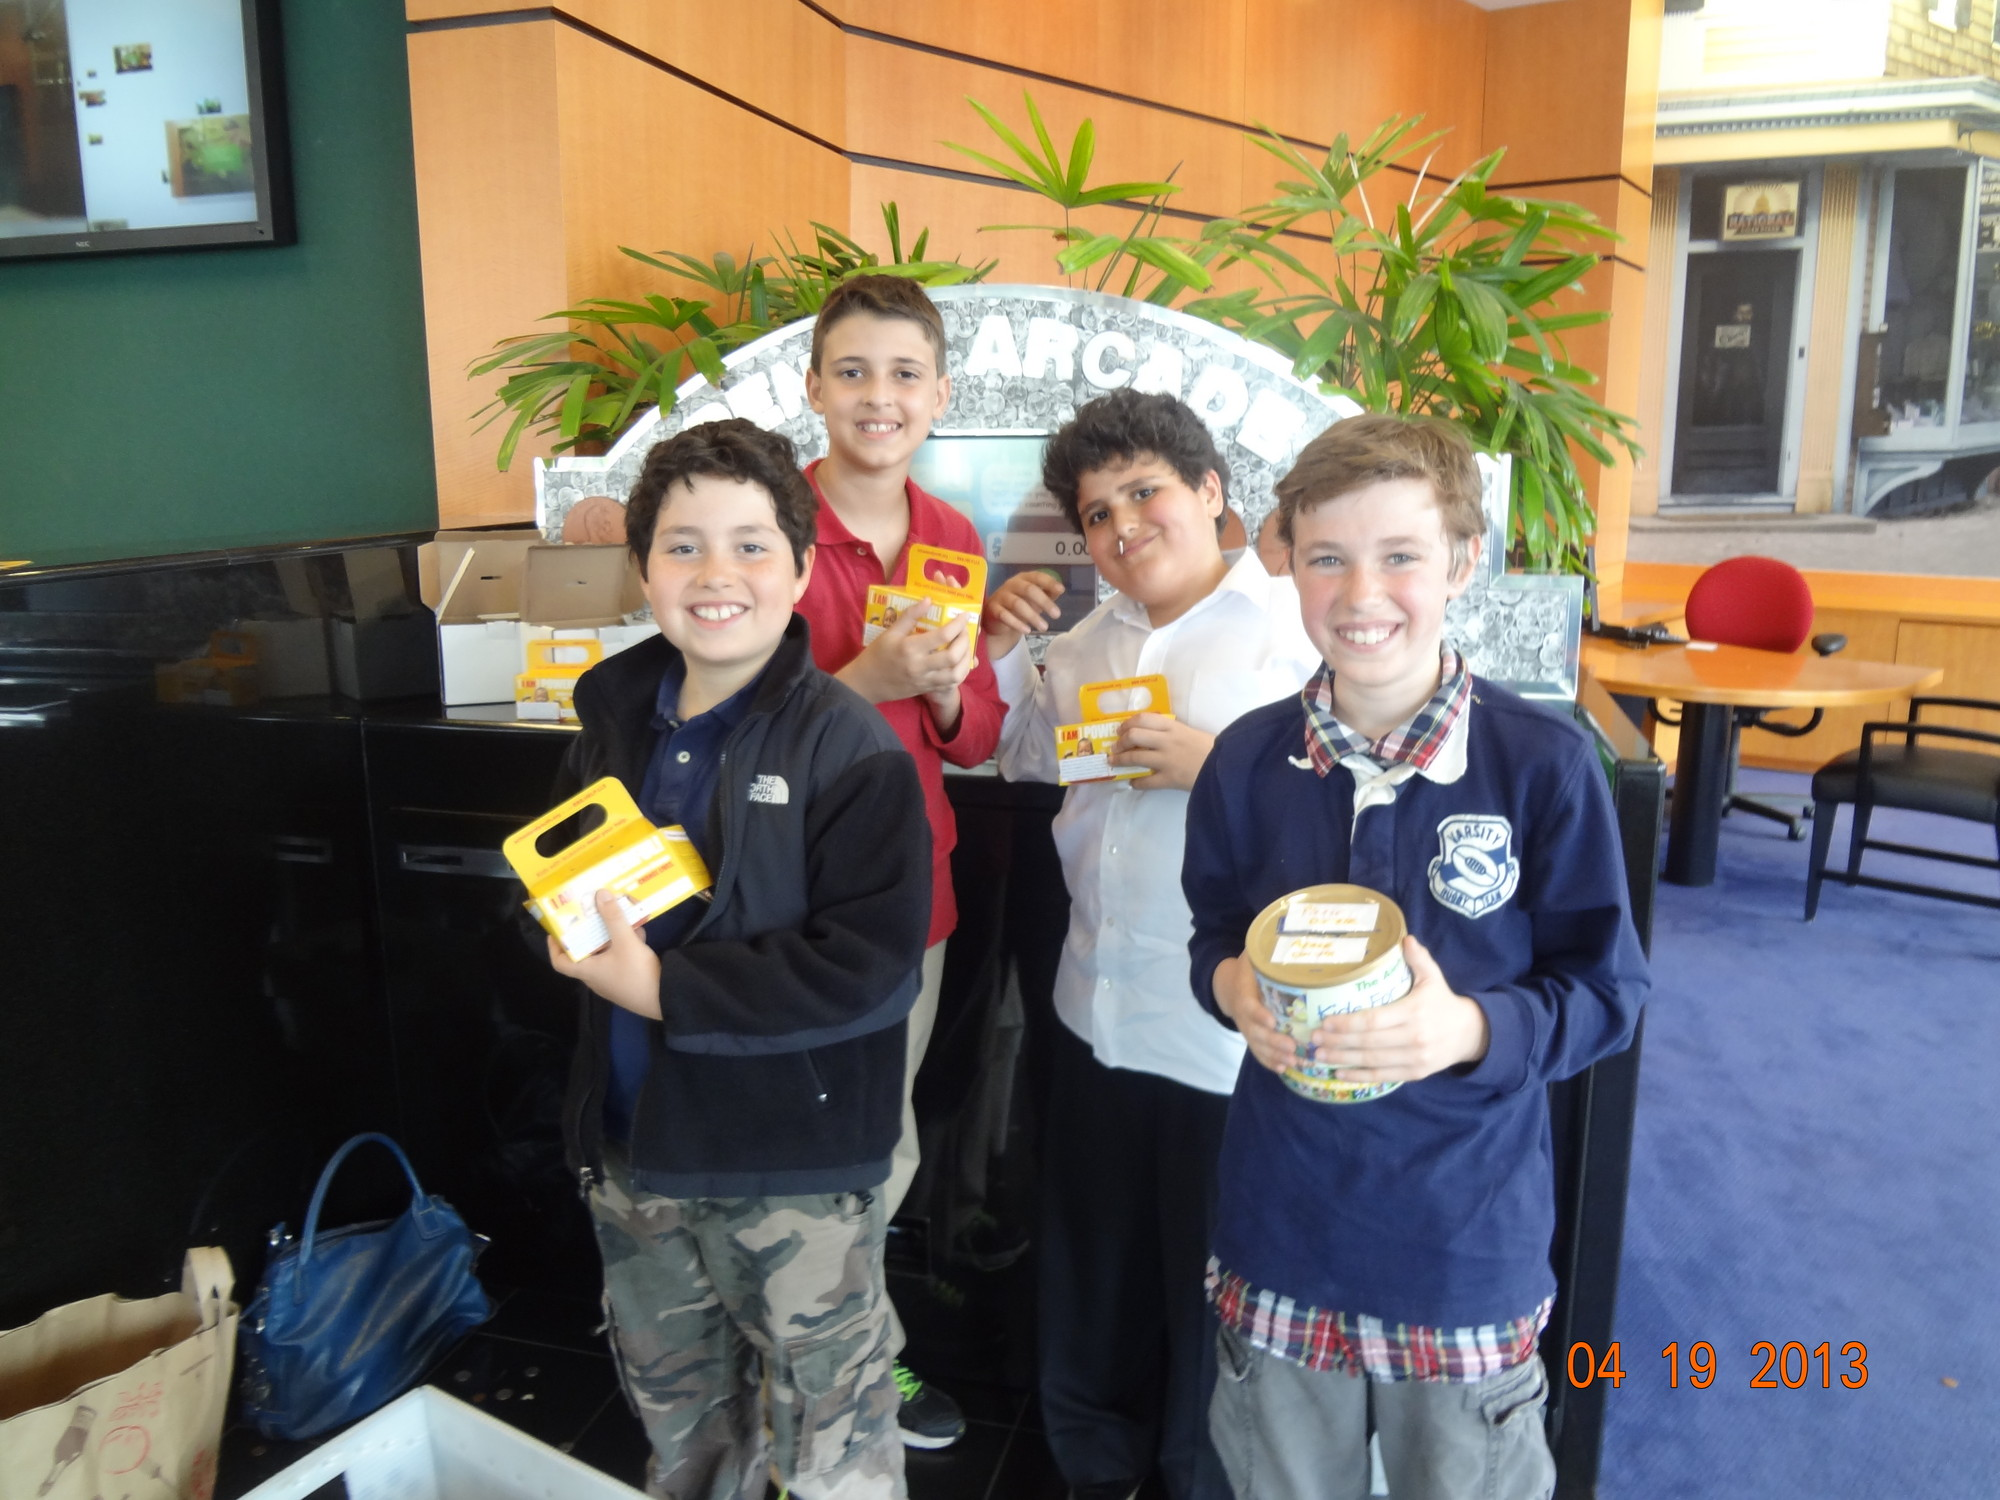 The Brandeis School collected nearly $2,000 for the Leukemia & Lymphoma Society's Pennies for Patients program. Fifth grade students Jacob Nessim, Brad Greissman, Yoni Glattman and Avi Nessim deposit the funds at TD Bank.